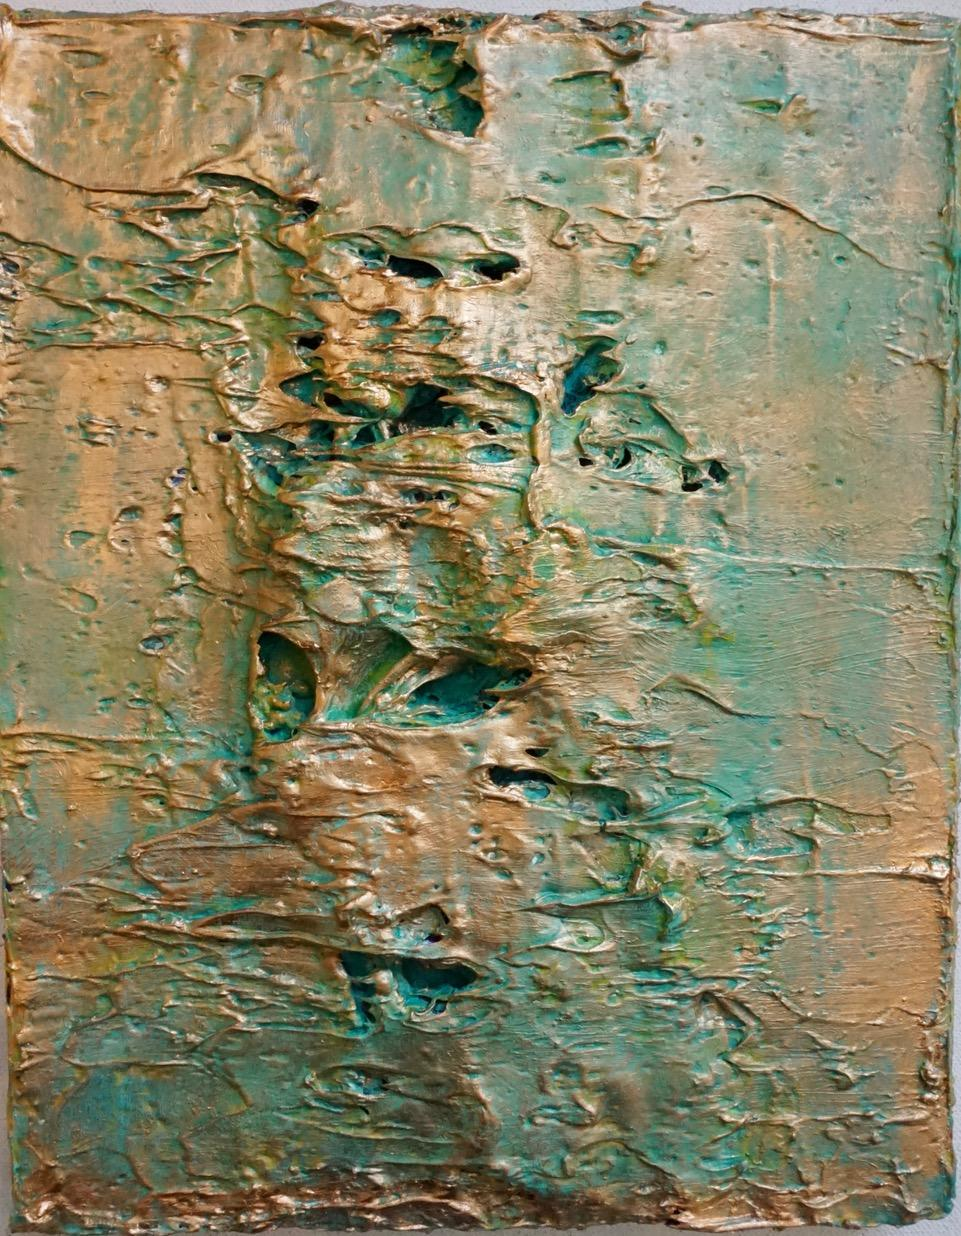 Tactile memory #68 One of a kind, Acrylic and oil on canvas